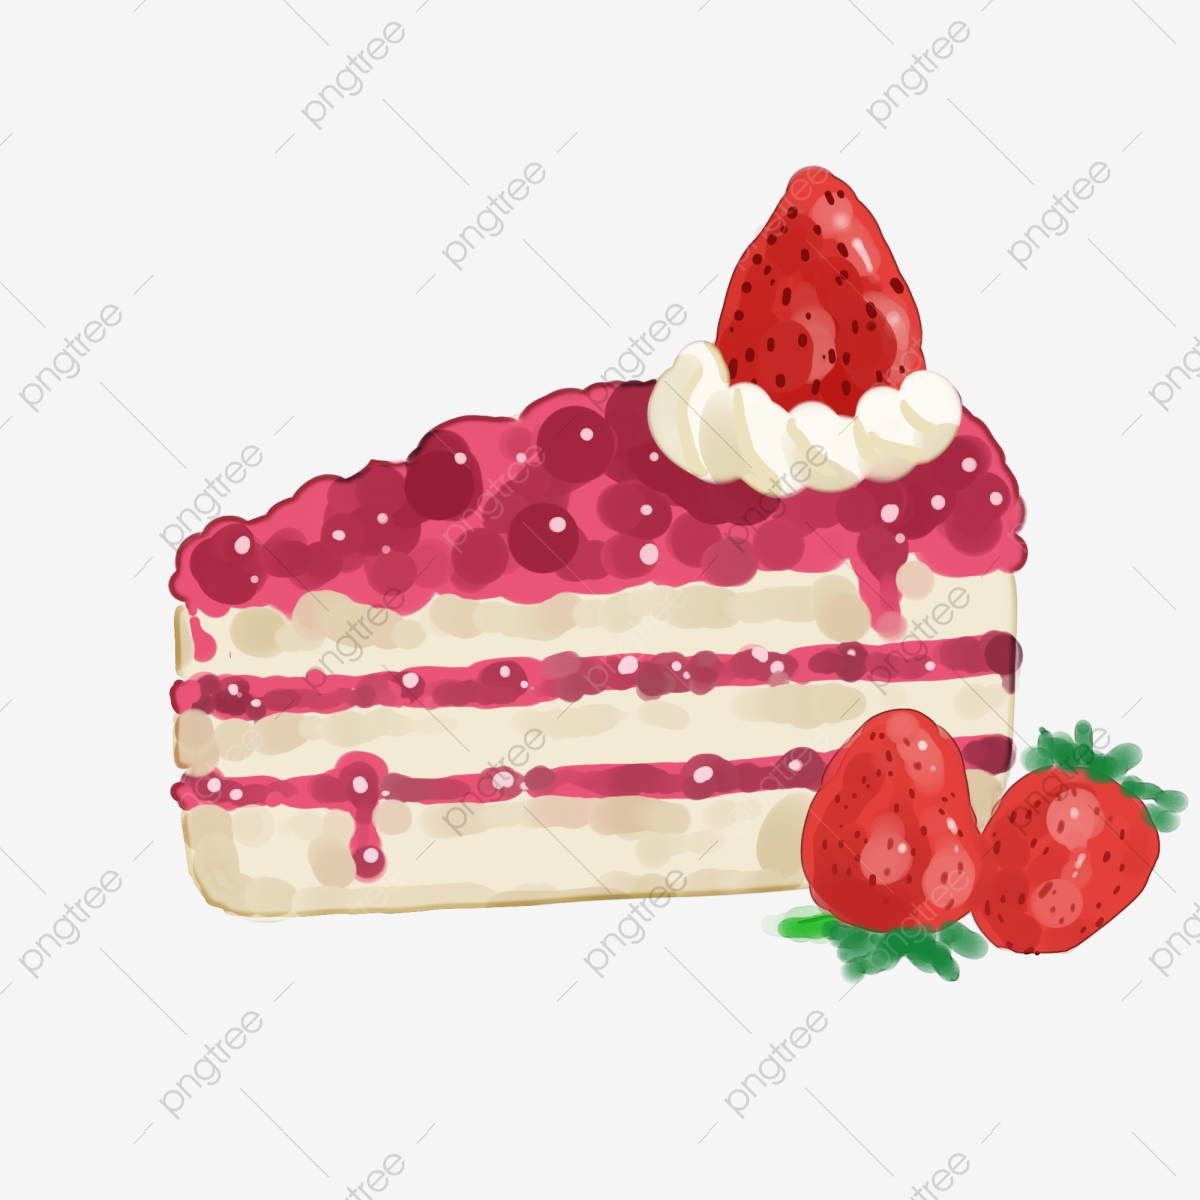 Strawberry Cheesecake, Strawberry Clipart, Dessert, Cake PNG.